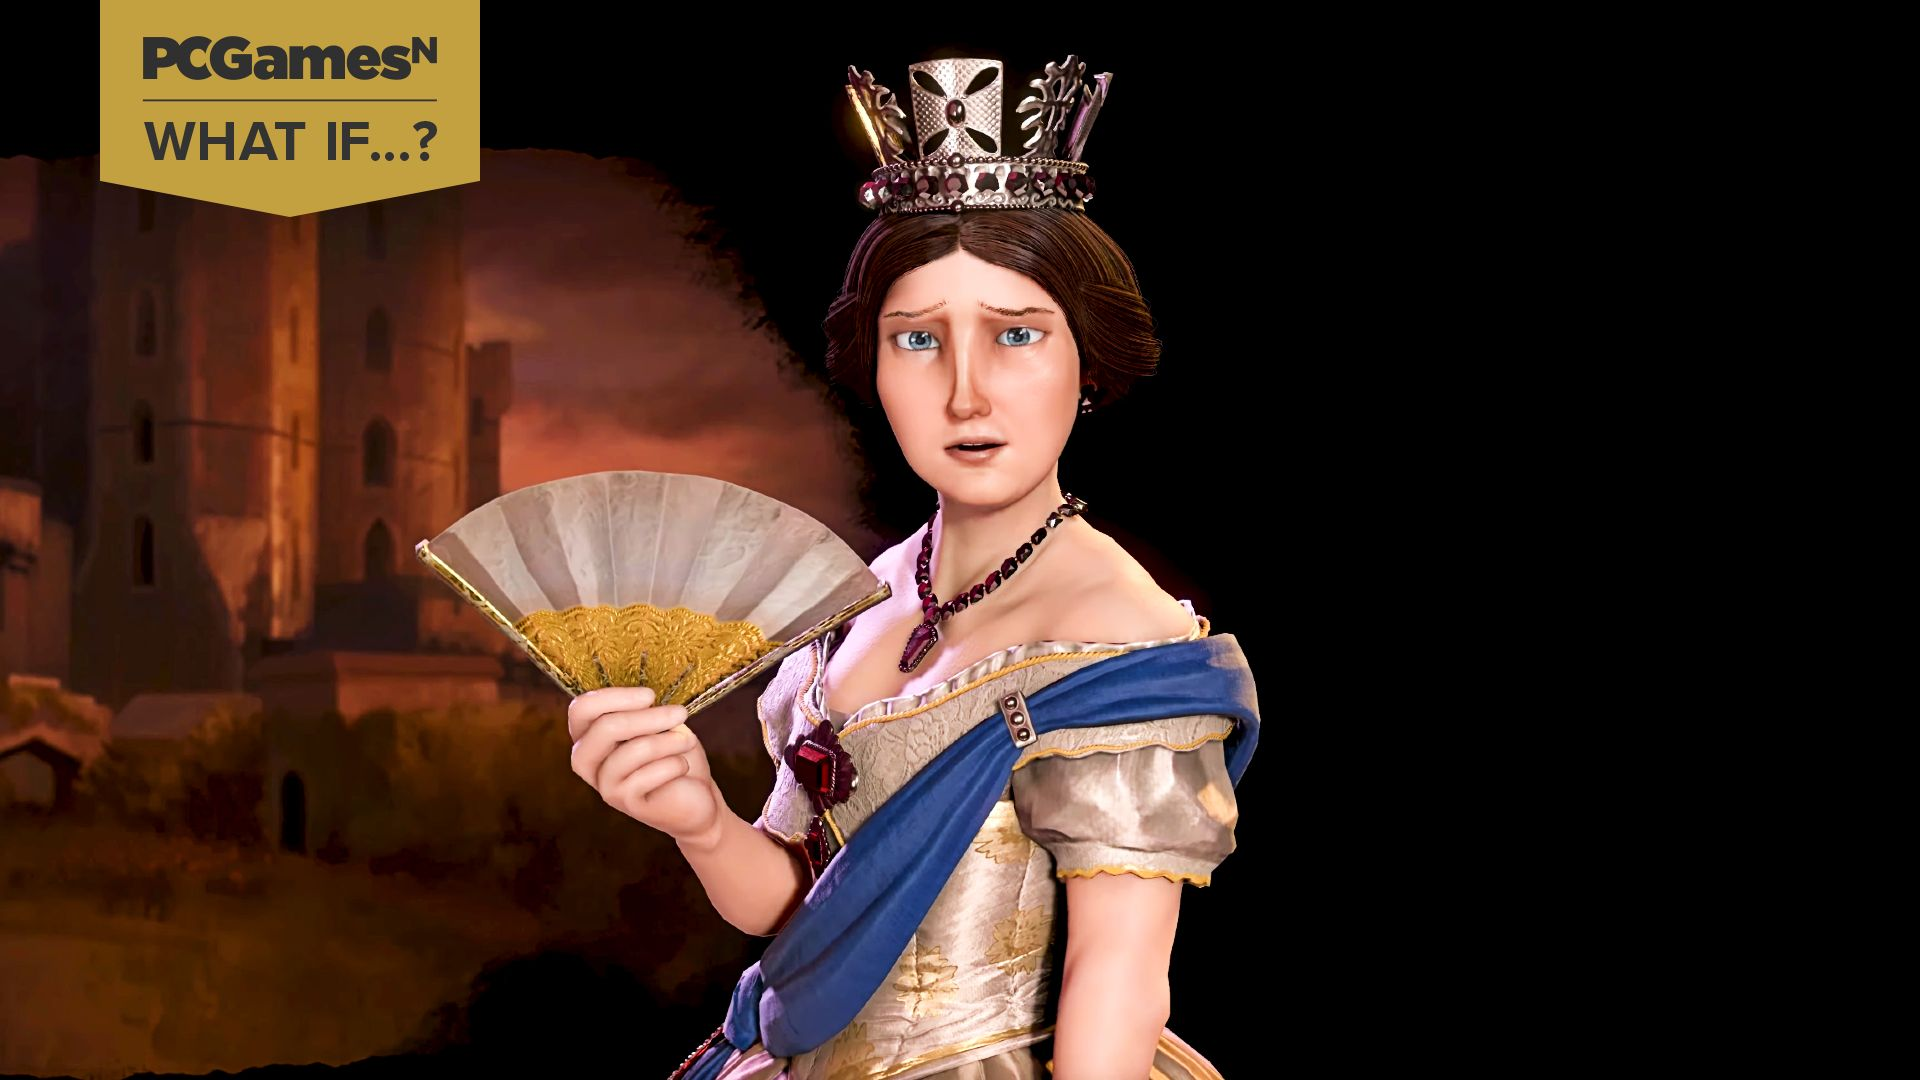 What if: strategy games like Civilization 6 had proper co-op?